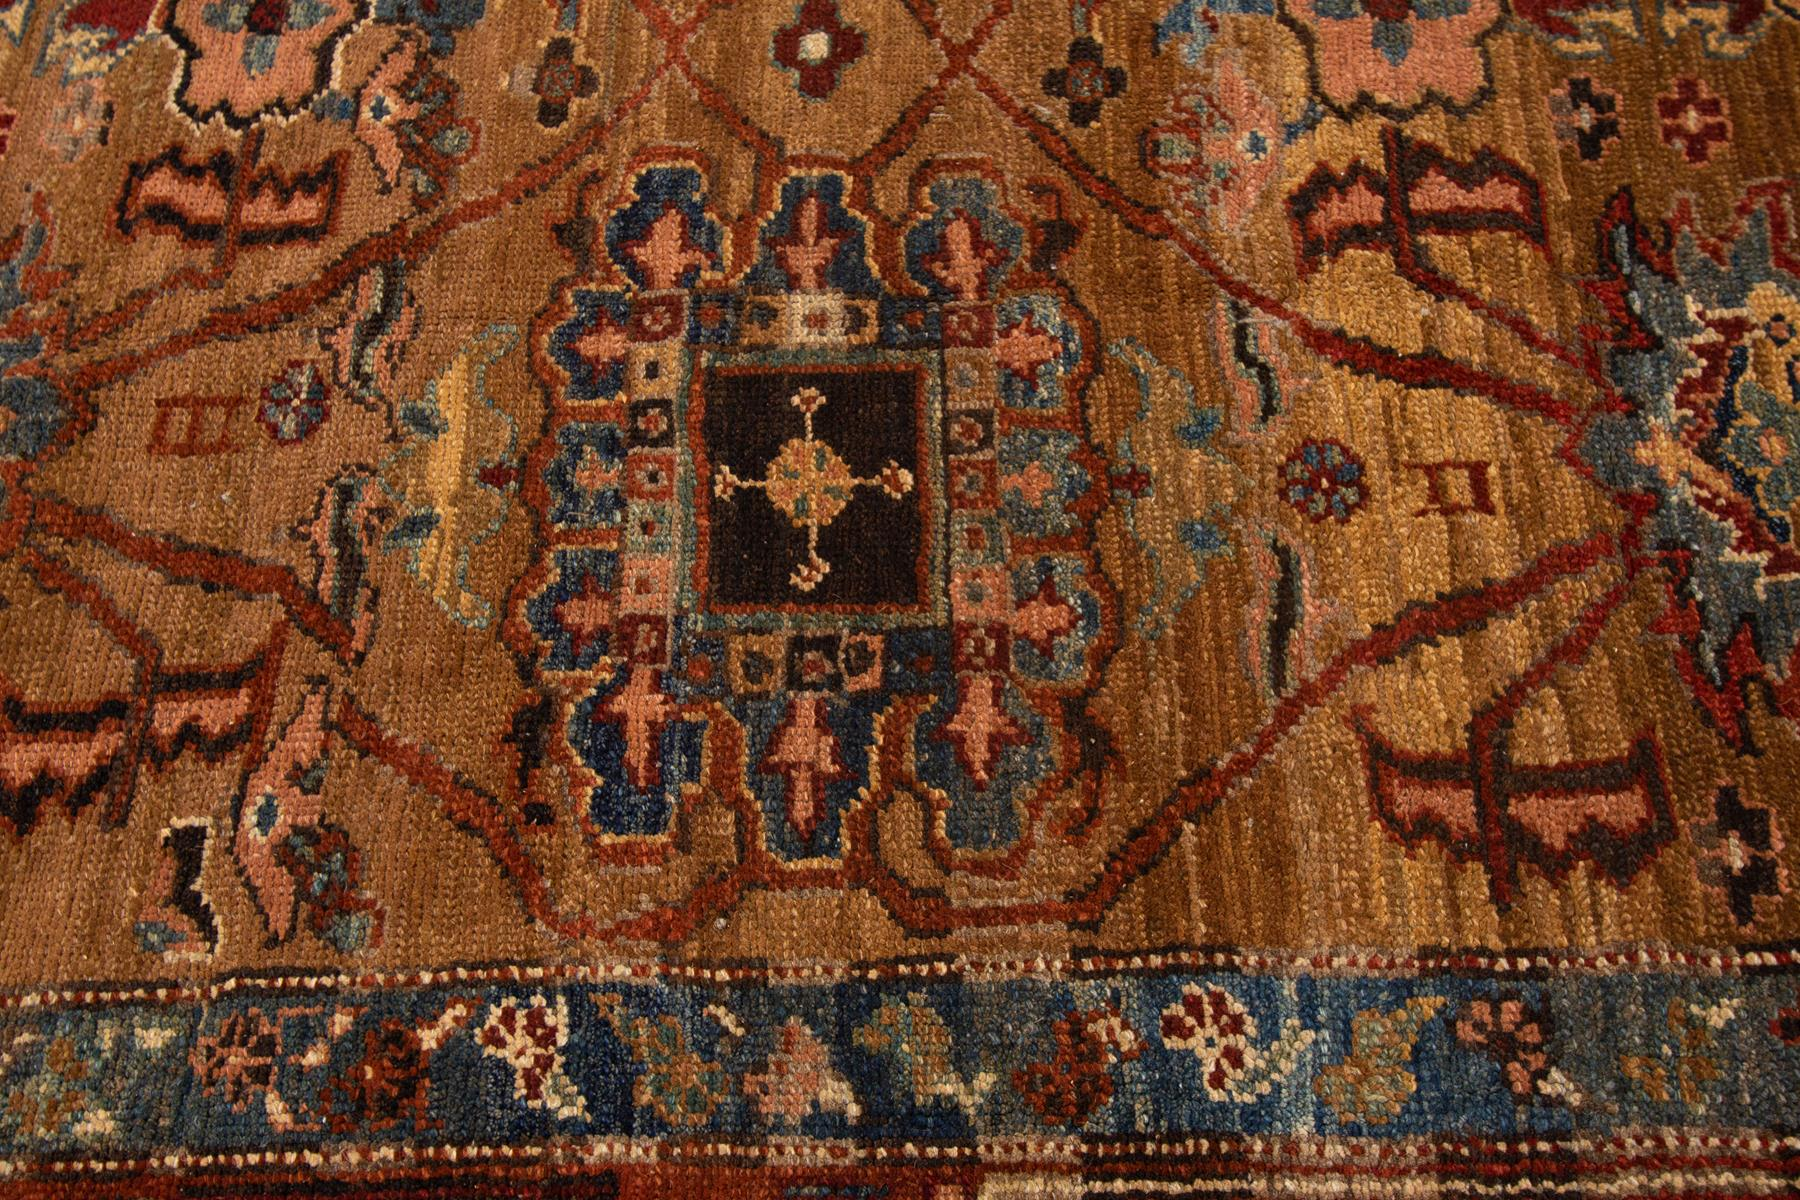 Vintage Persian Tribal Bakshaish Rug, 9X11